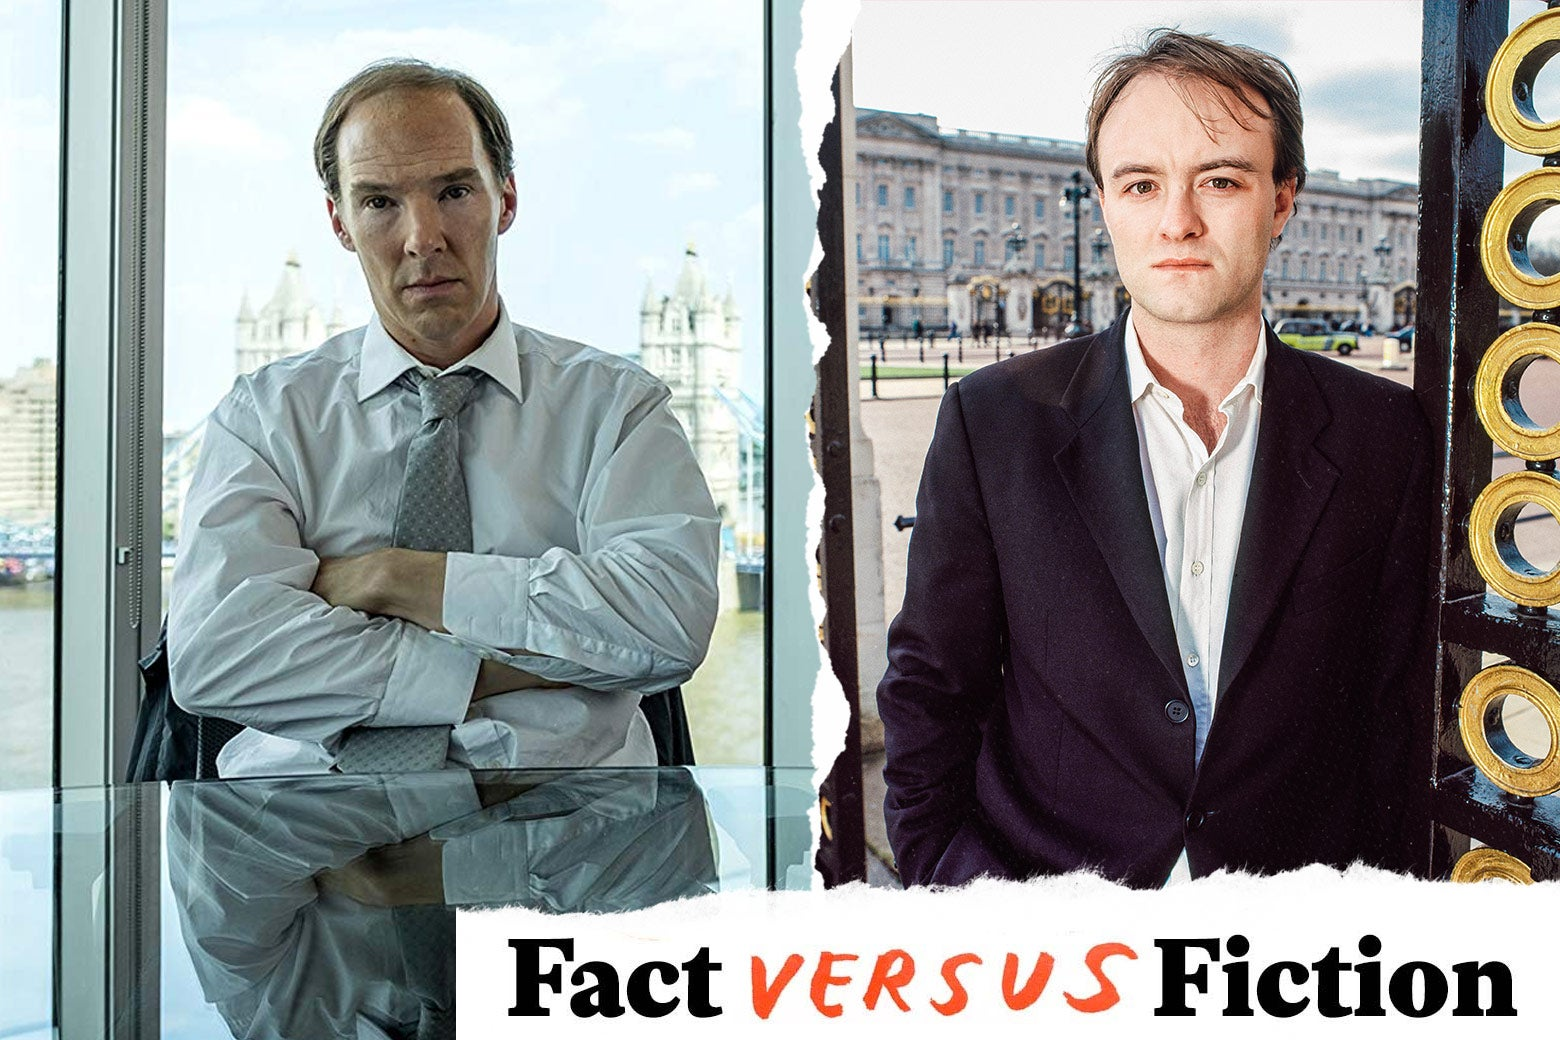 Benedict Cumberbatch as Dominic Cummings in HBO's Brexit movie, and the real Dominic Cummings.